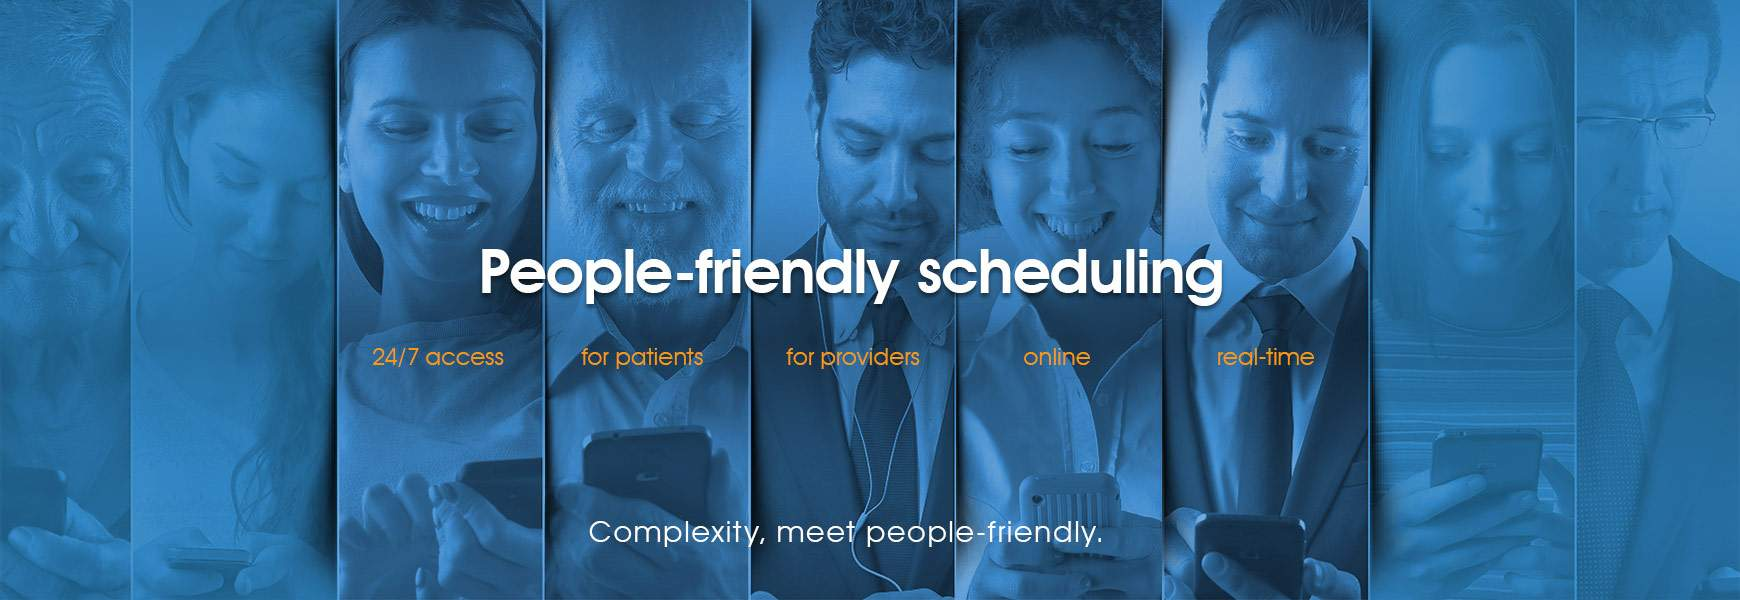 People-friendly scheduling